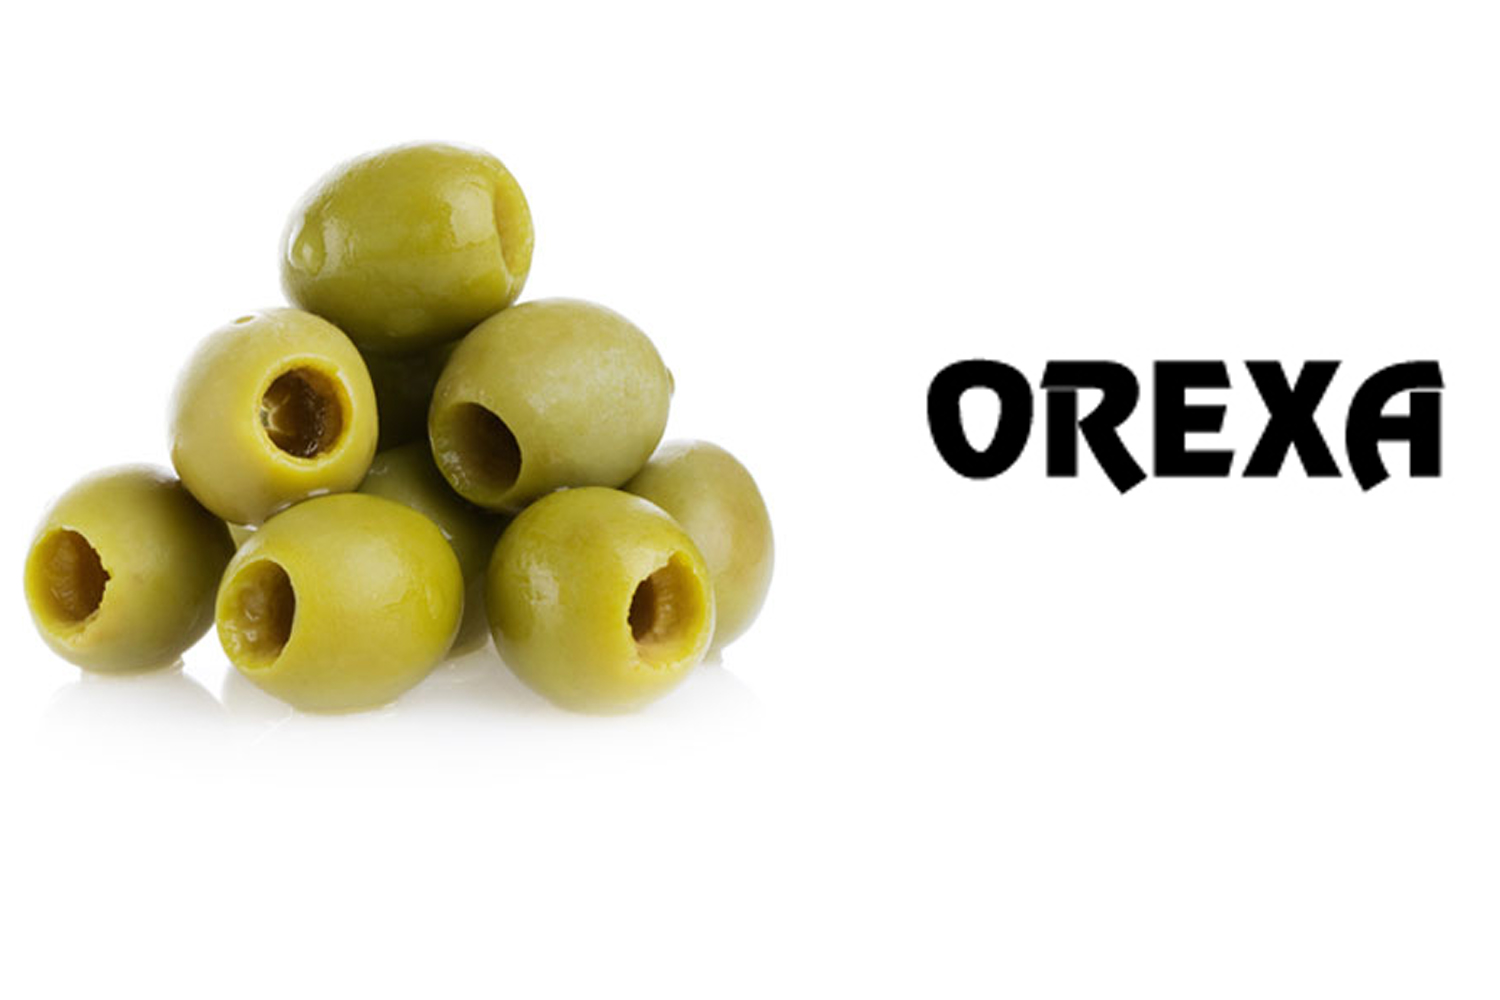 Orexa green olives pitted